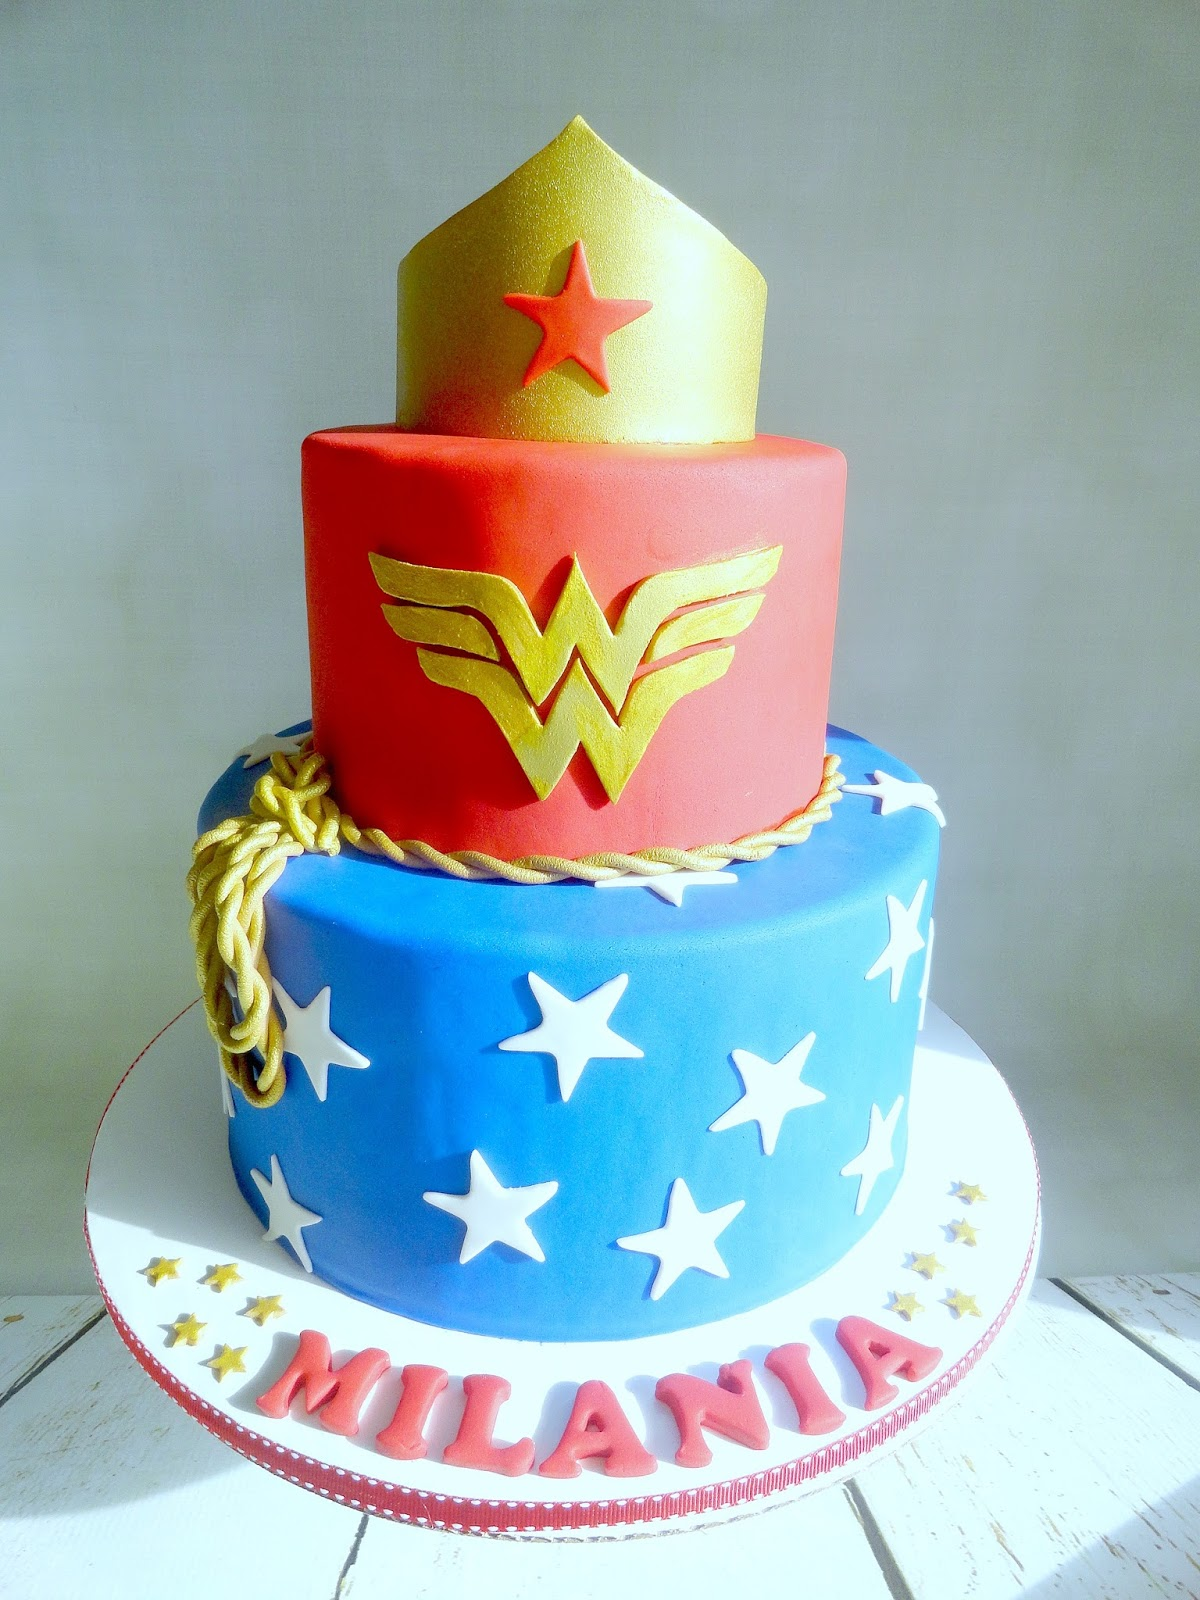 My Pink Little Cake Wonder Woman Theme Cake And Cookie Favors